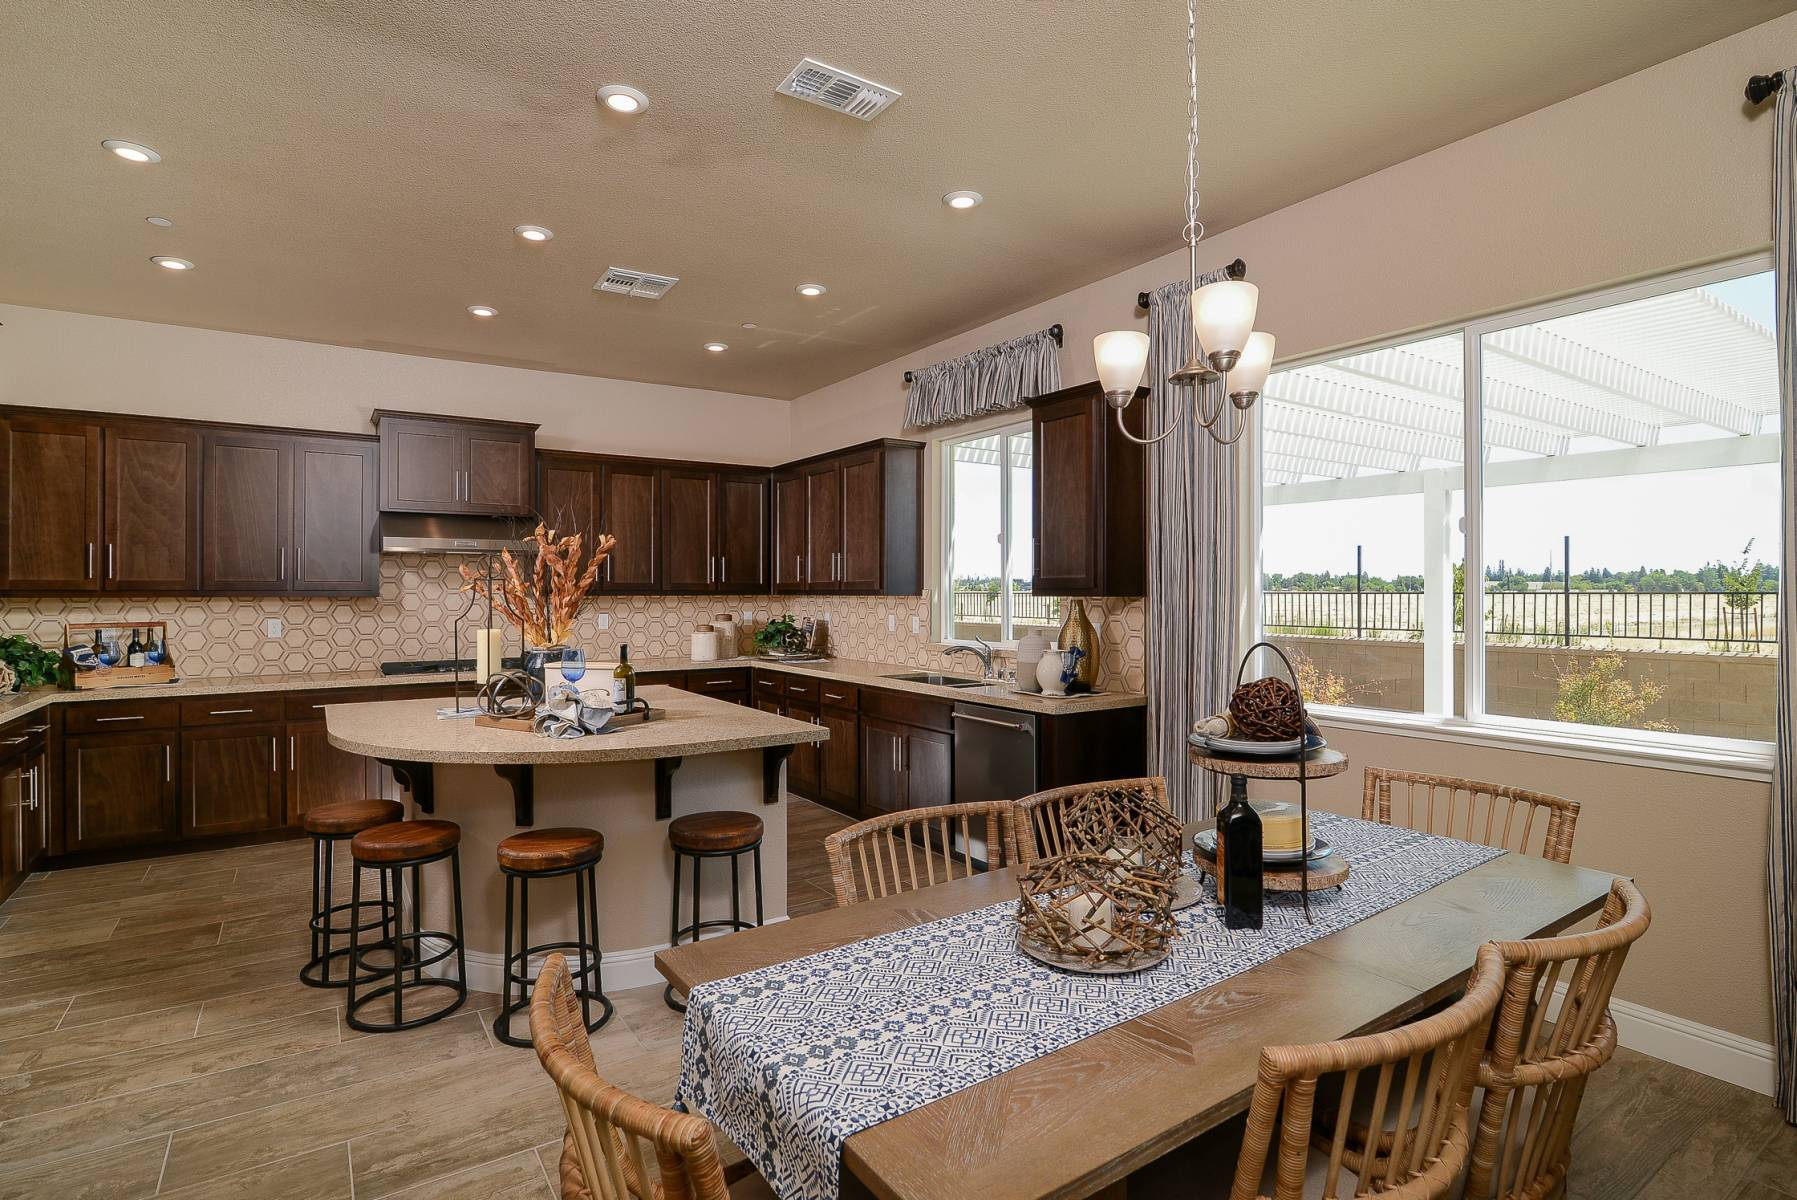 Kitchen featured in the Sangiovese By Elliott Homes in Stockton-Lodi, CA